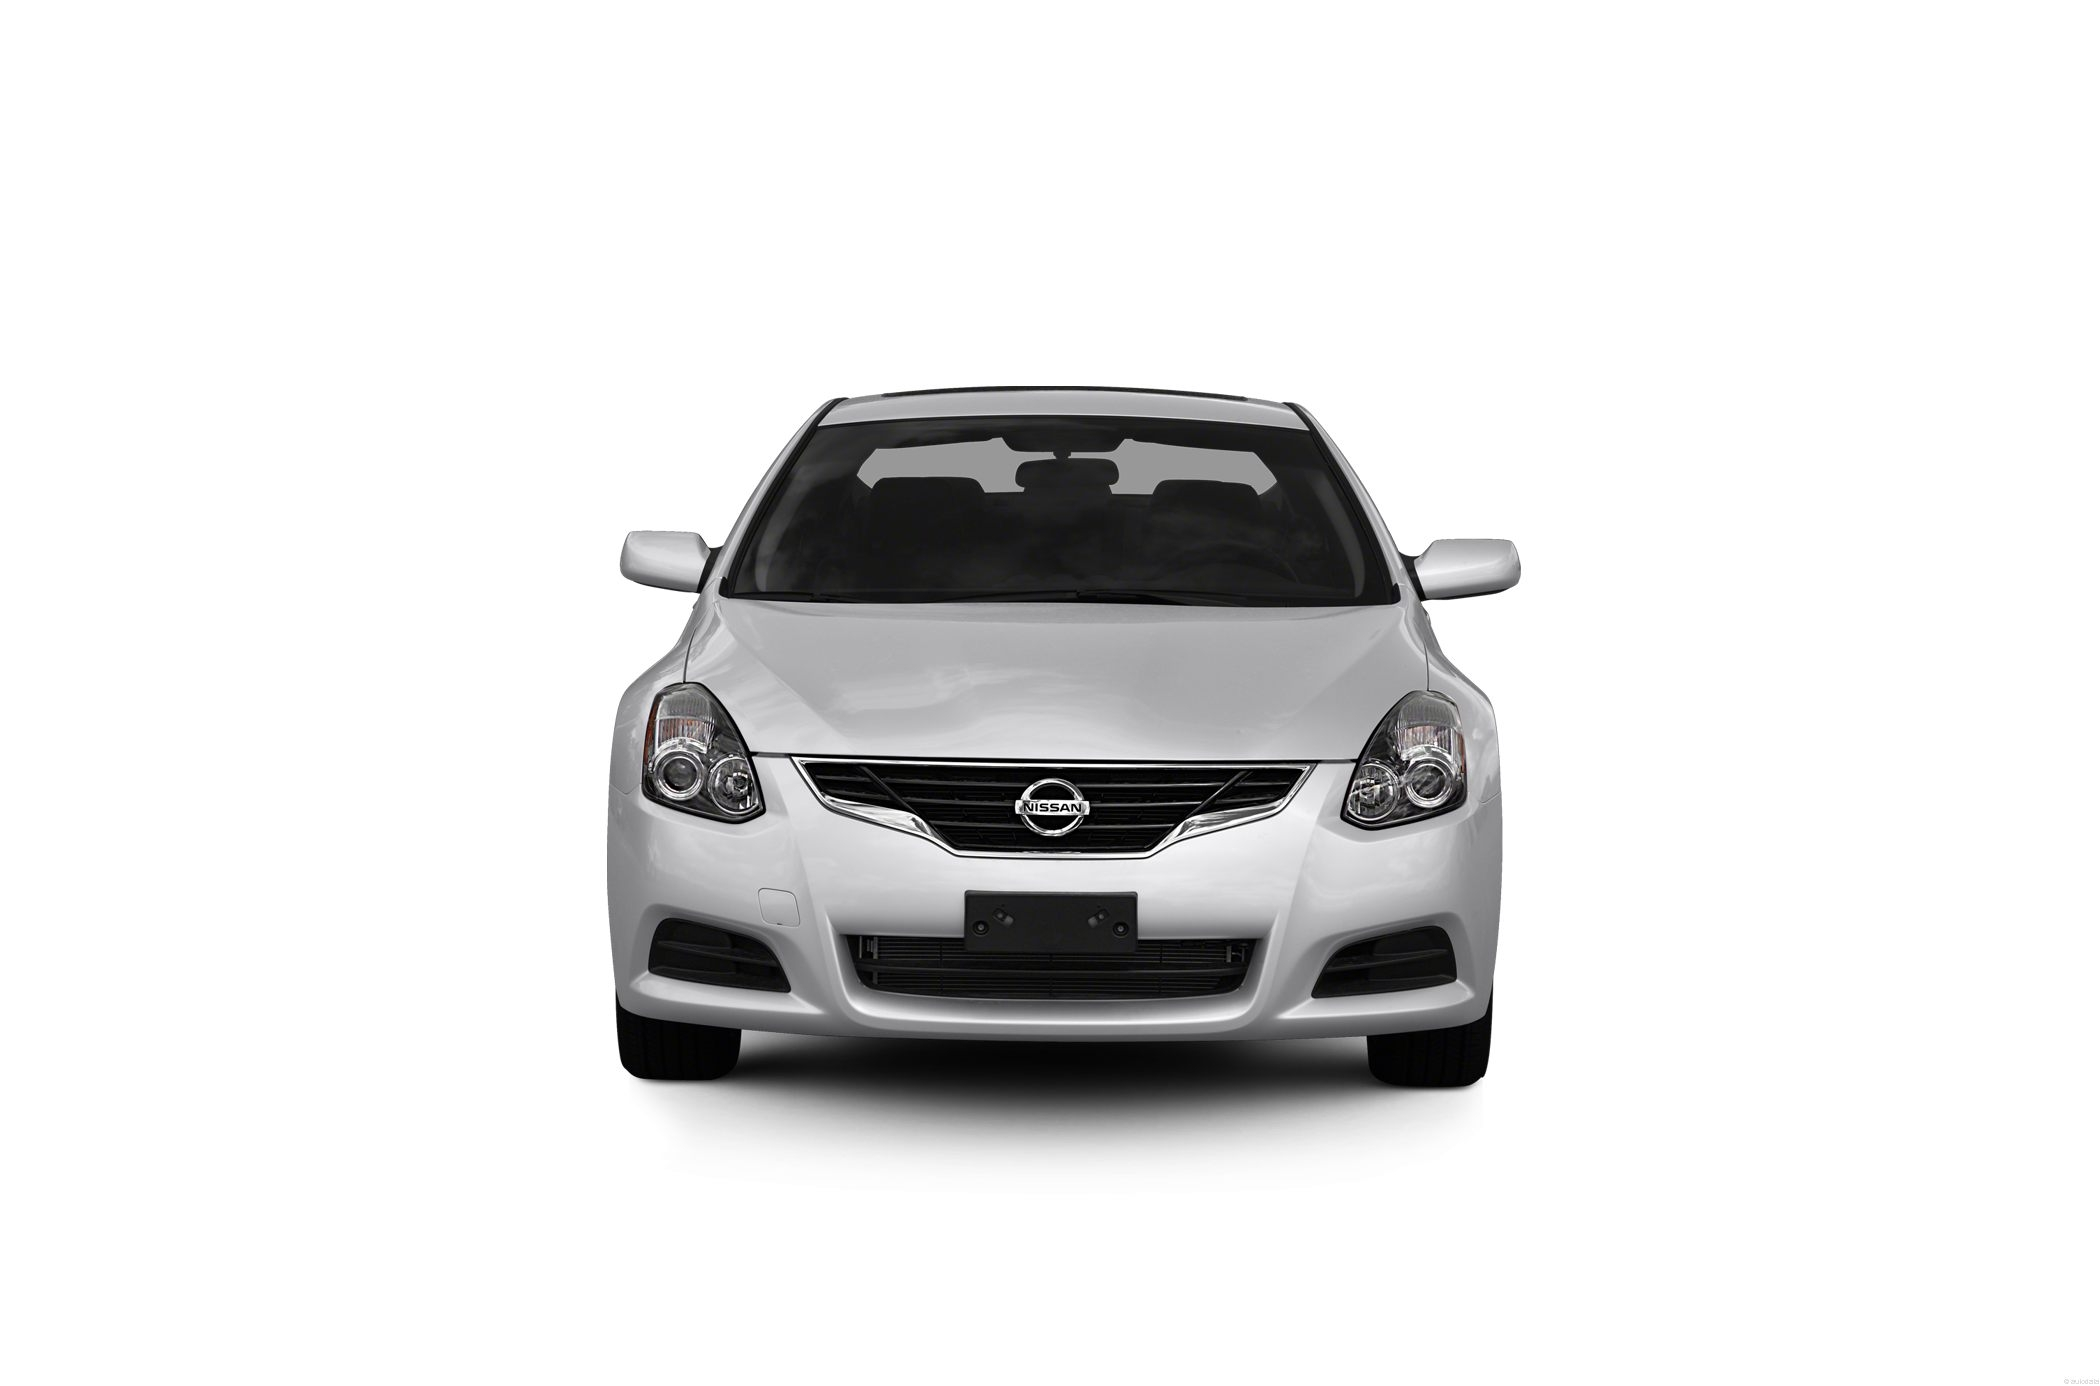 price of a 2012 nissan altima cars nissan altima invoice price